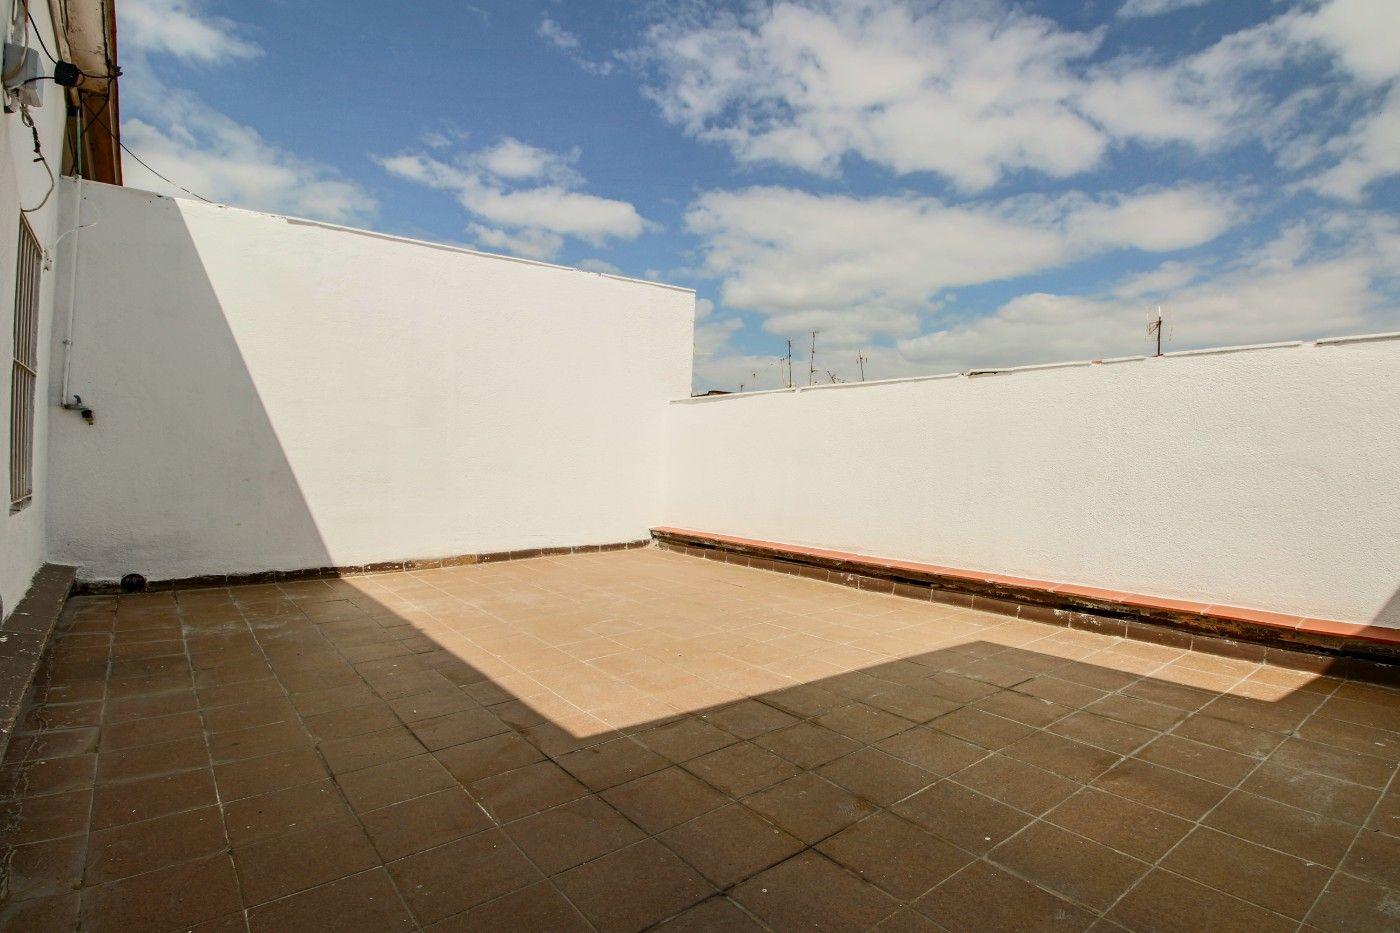 Rent Studio in Carrer marti i blasi, 79. Estudio con terraza